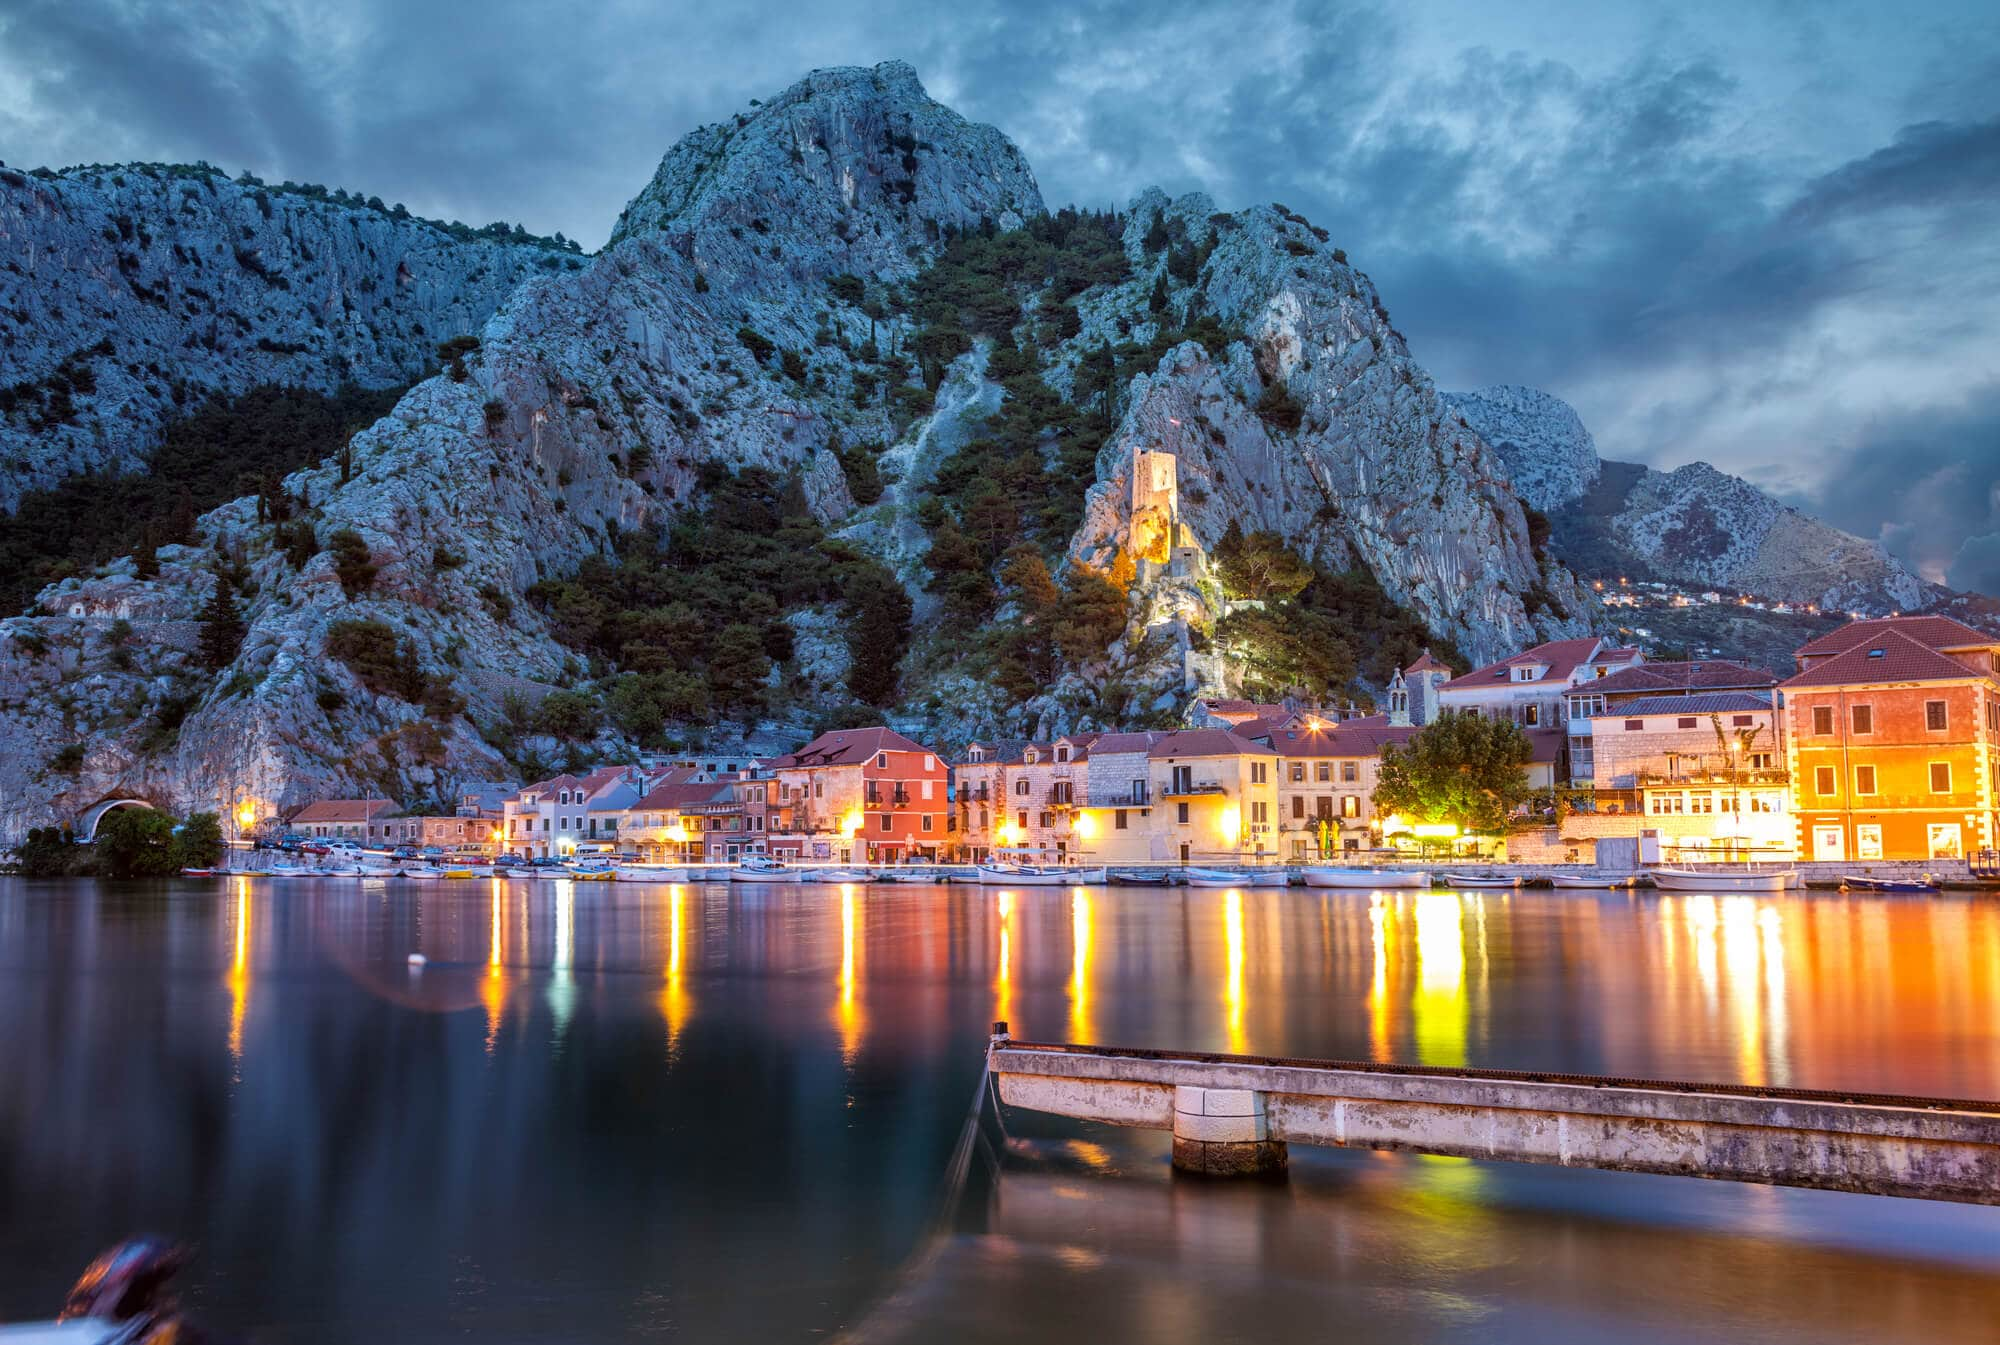 Lights reflecting in the ocean in Omis, Croatia